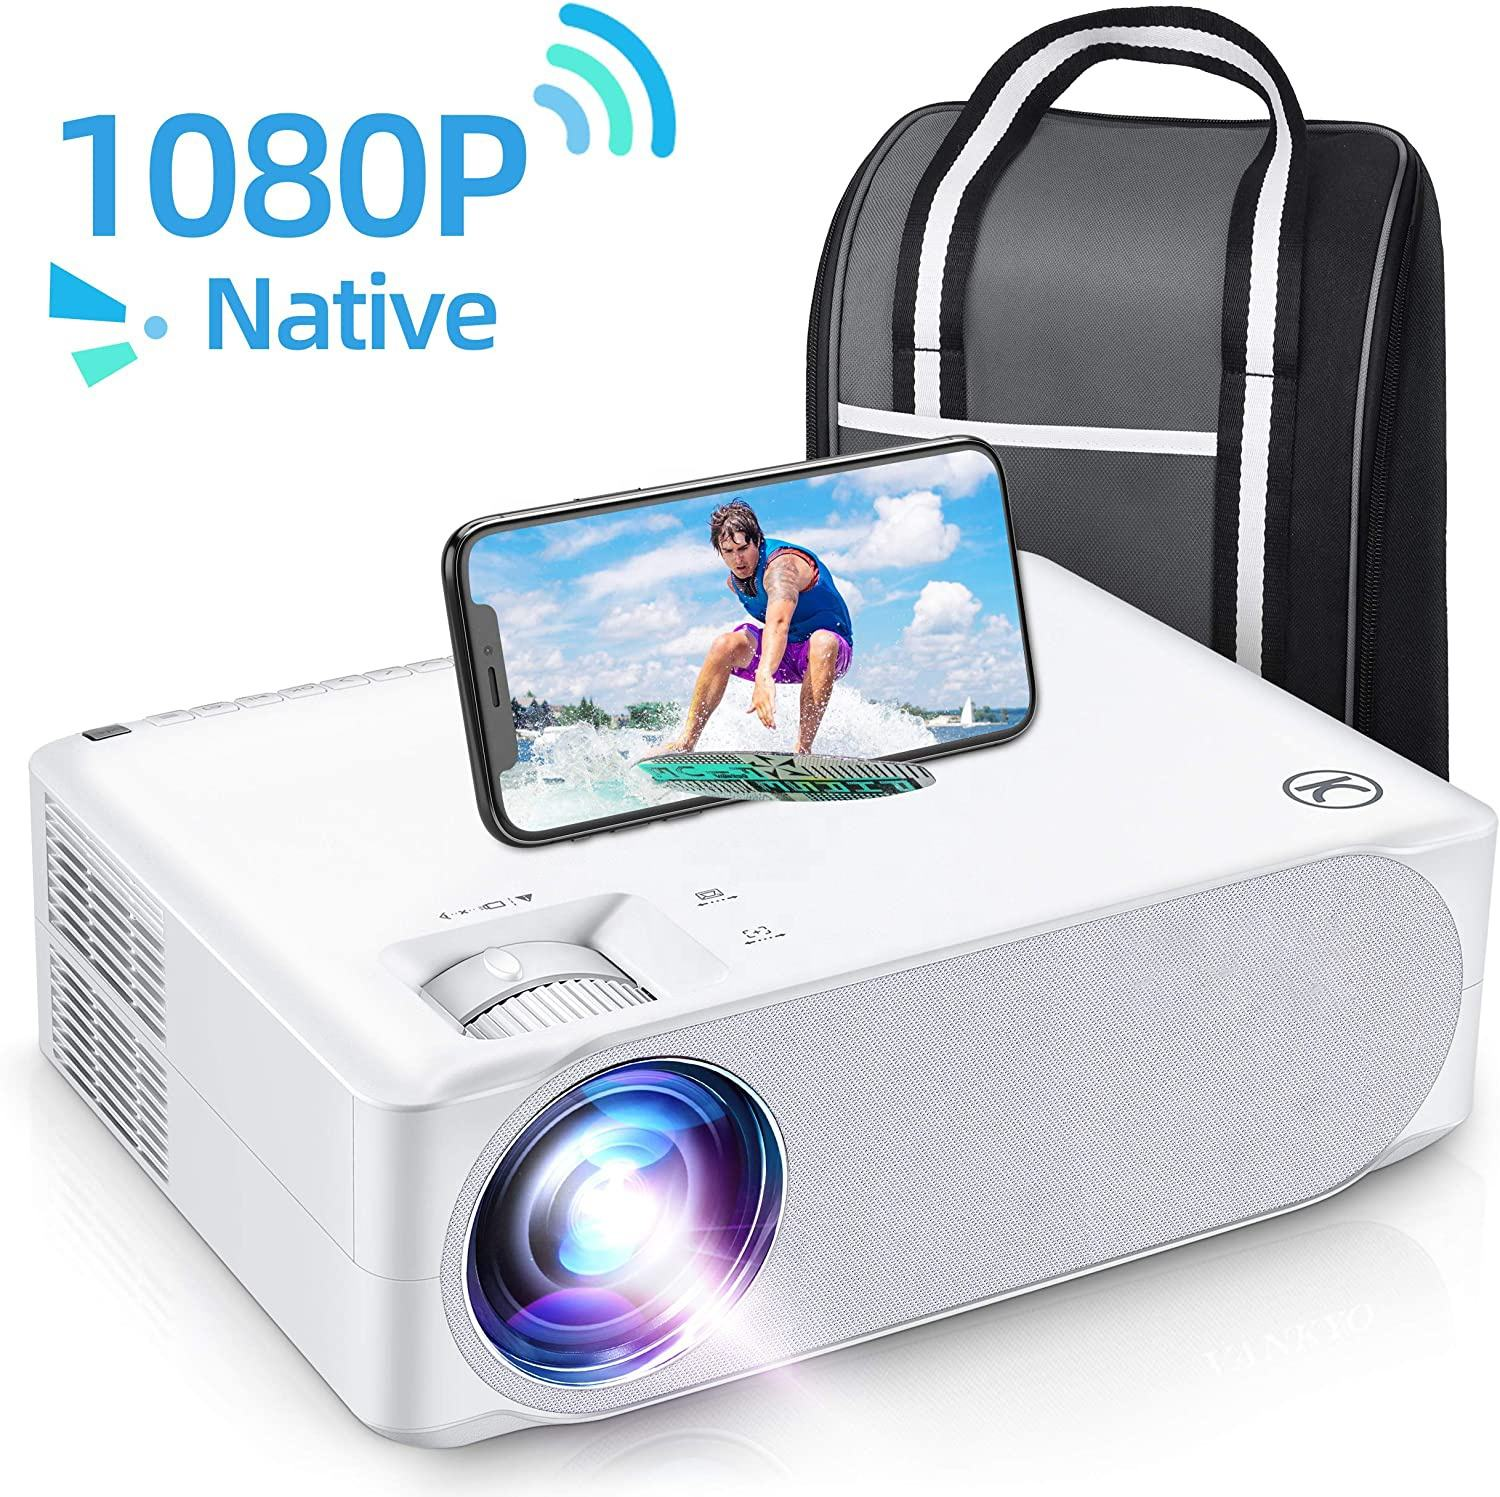 Proyektor Video Film Proyektor, Proyektor 1080P Full HD LCD LED Tinggi 6000 Lumens Home Theater Projector